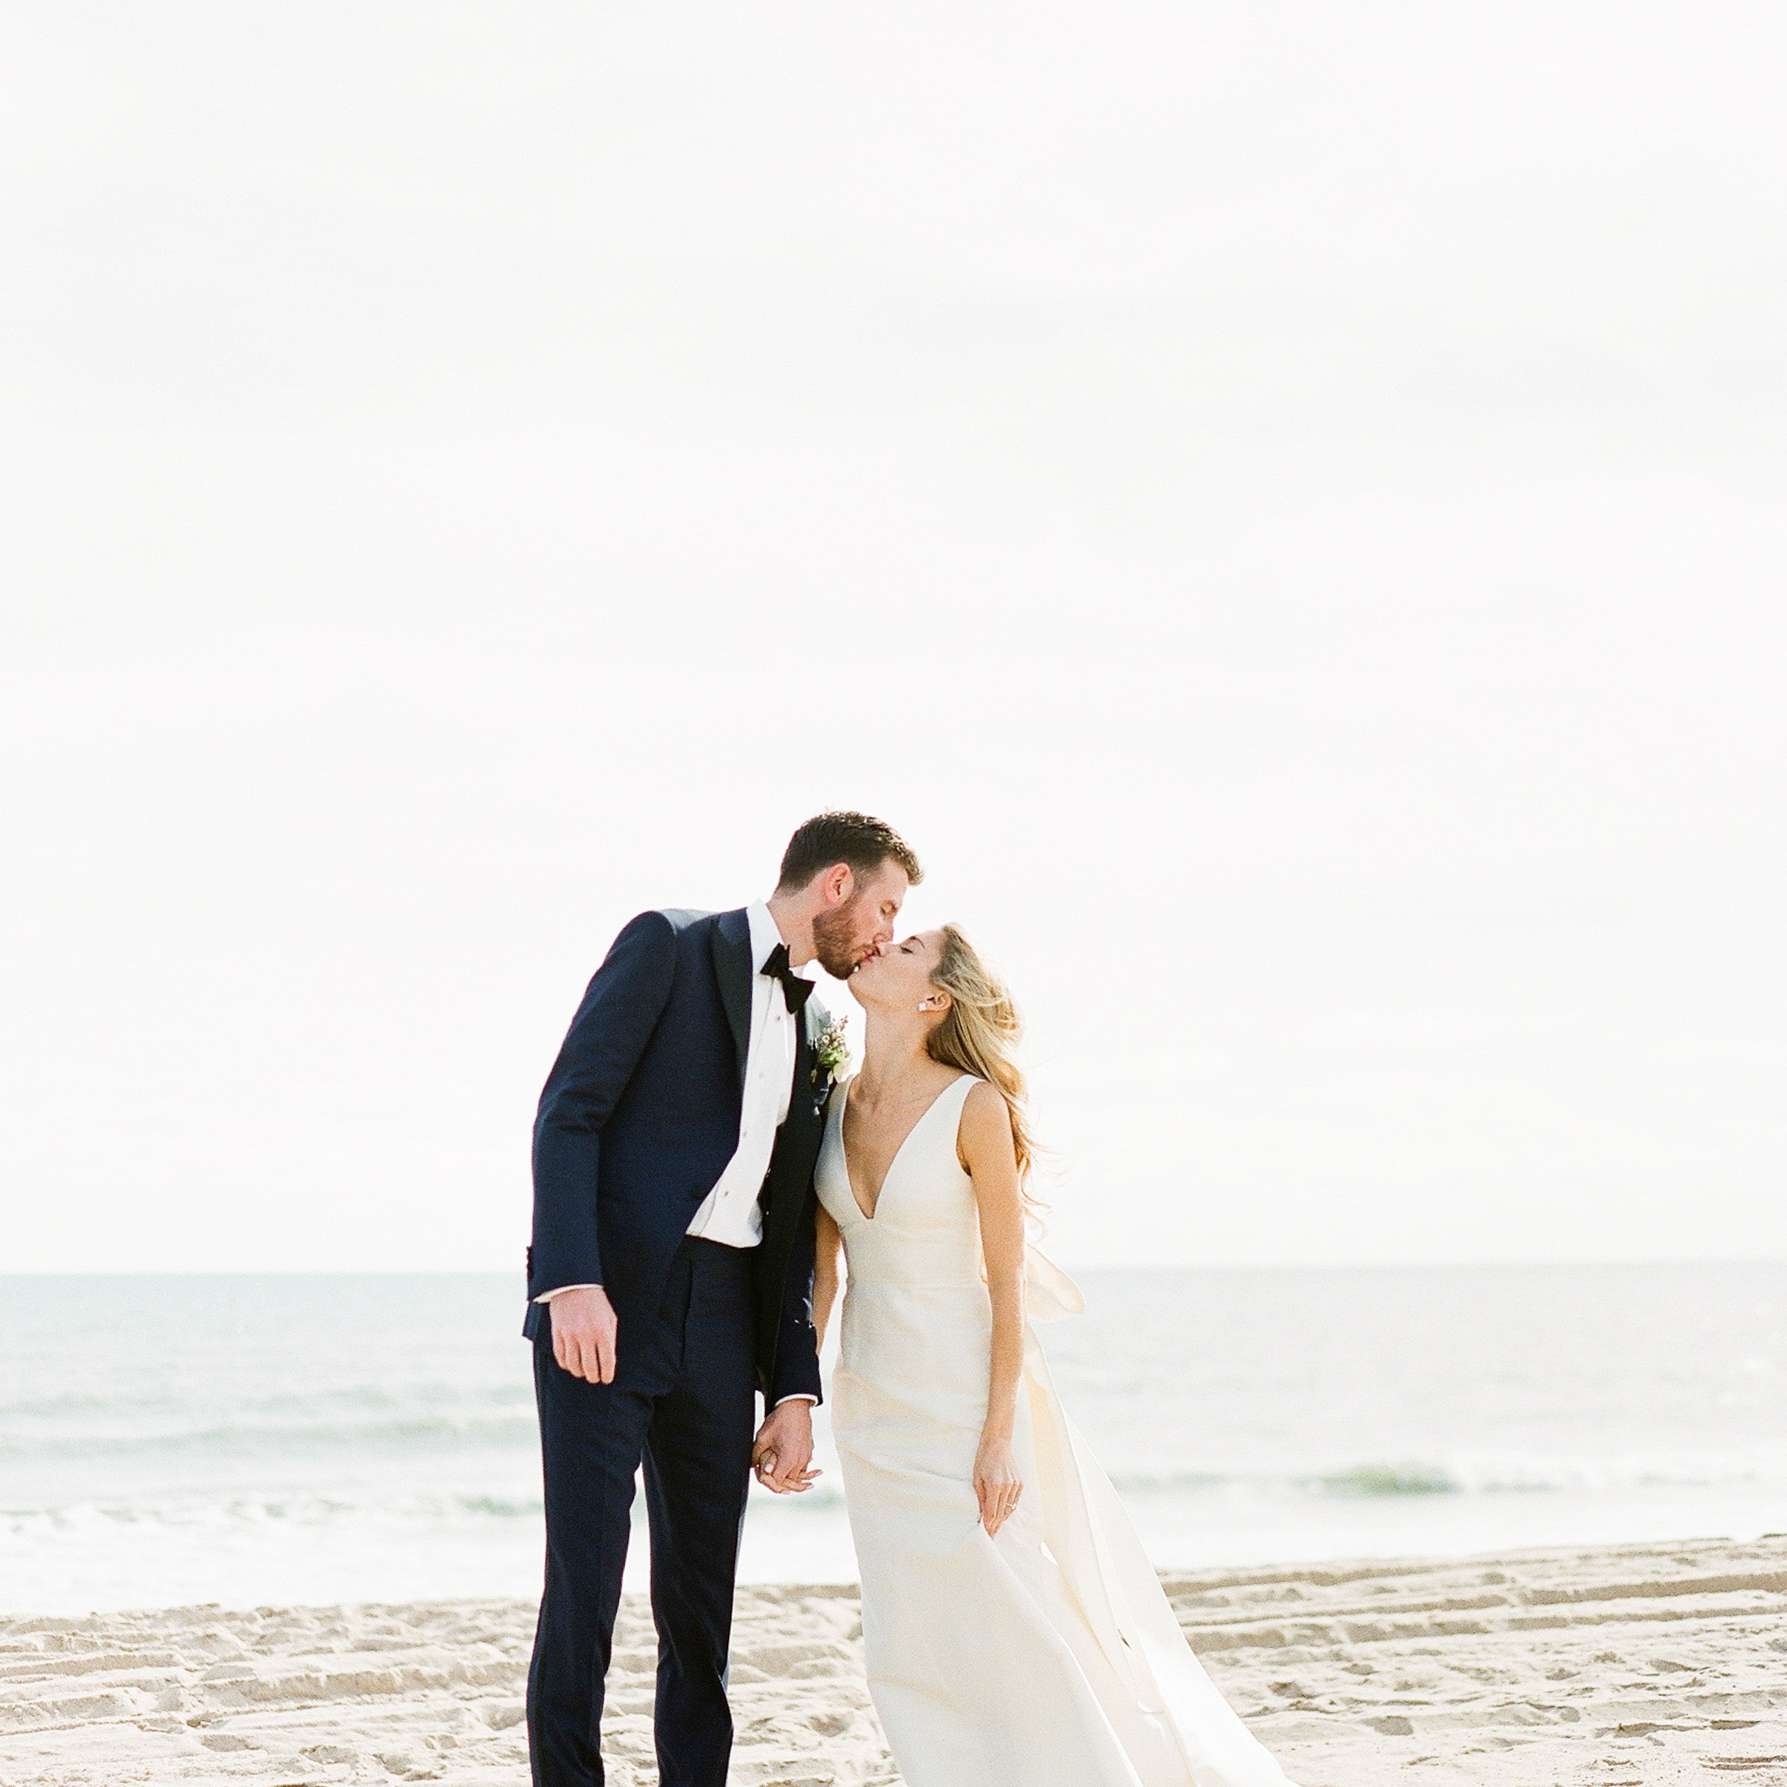 <p>bride and groom kissing on beach</p><br><br>